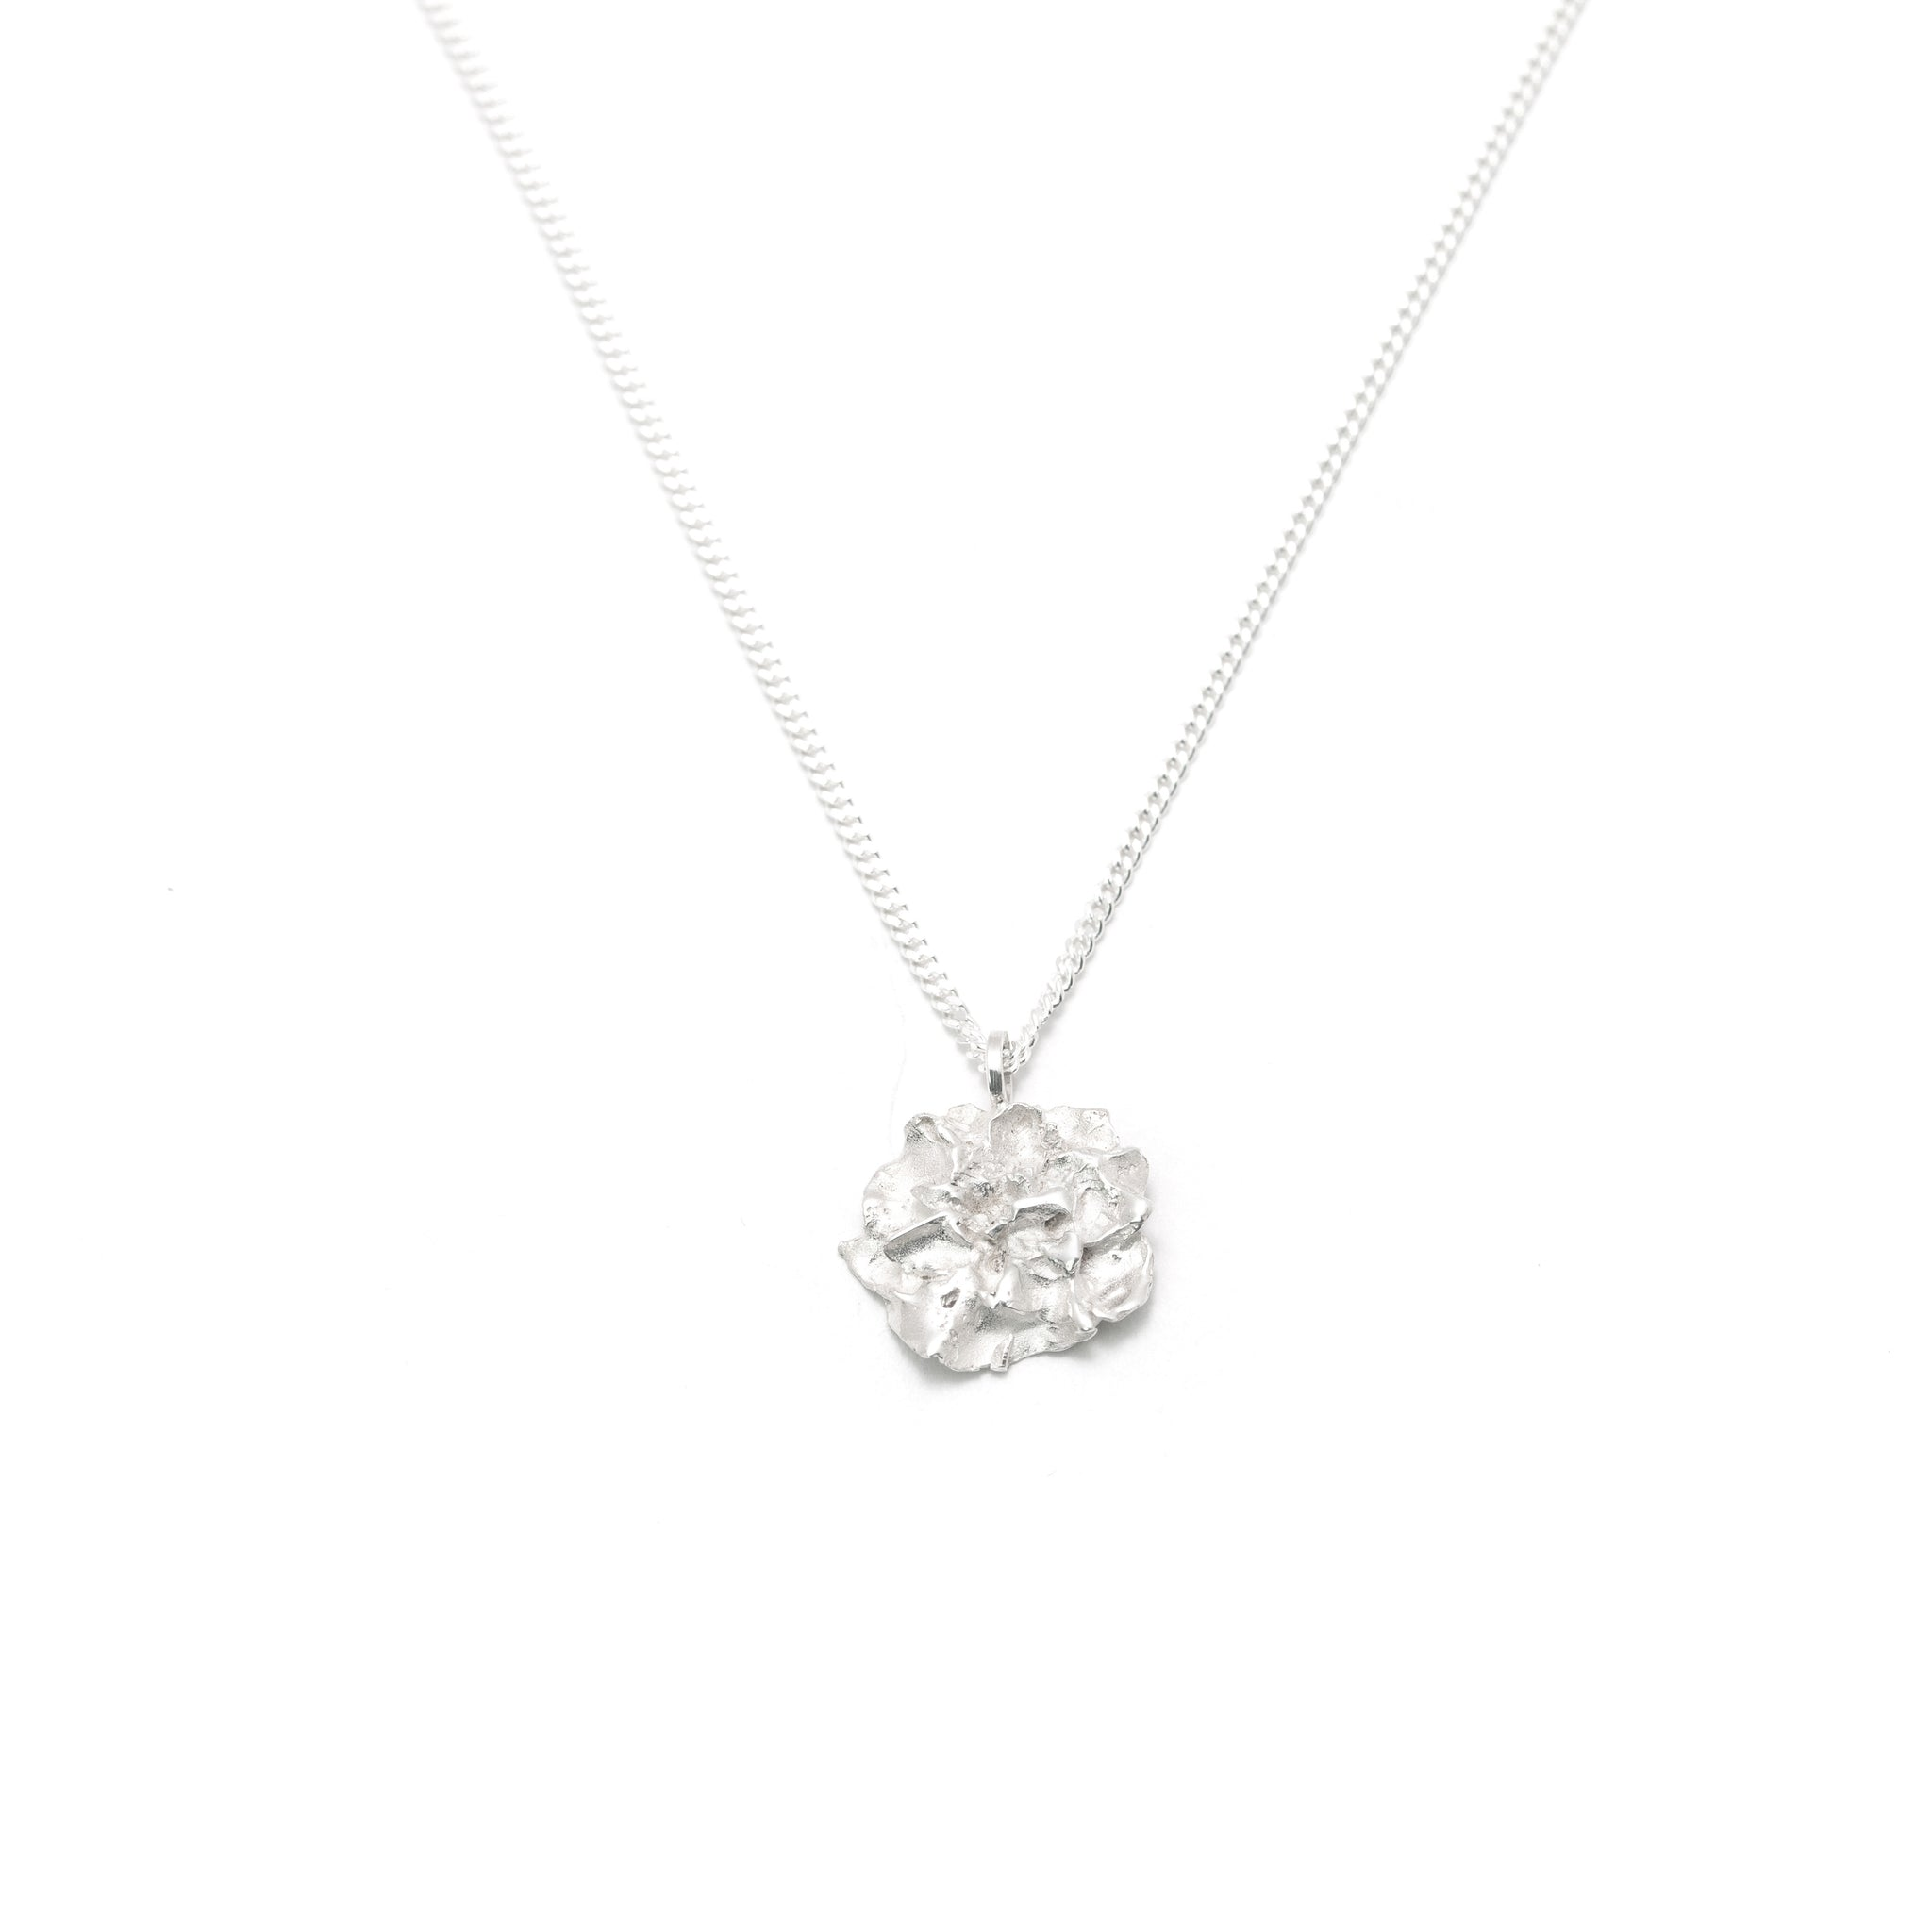 Silver Hedgerow Flower Drop necklace on white background